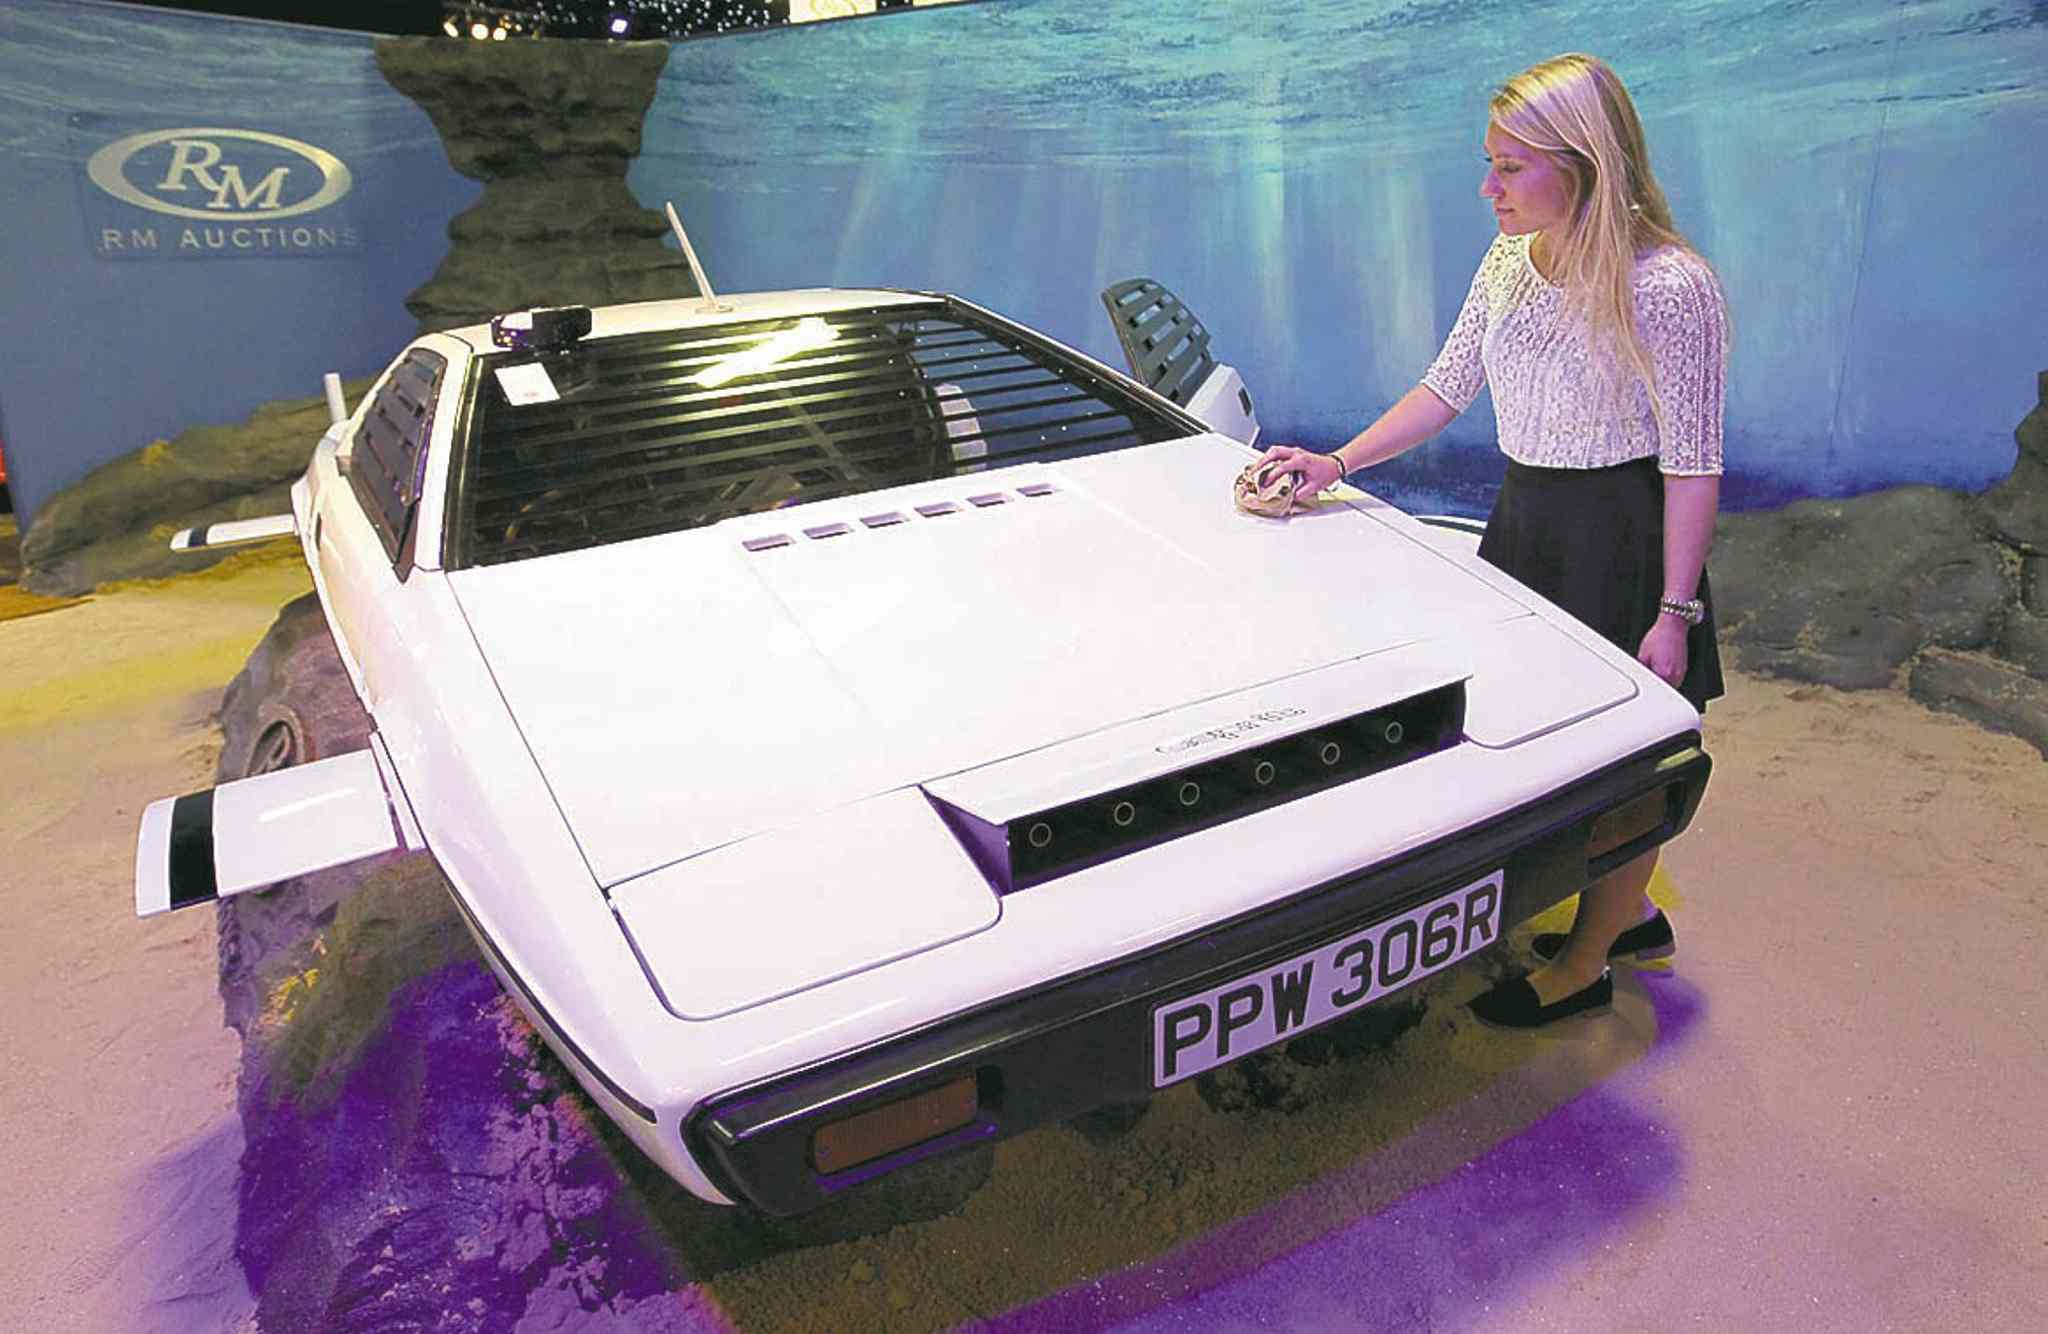 RM Auctions assistant Hannah Fairclough with the white Lotus Esprit used in the James Bond movie 'The Spy Who Loved Me'. The car was sold on Sept. 9  for 550,000 pounds ($865,000).